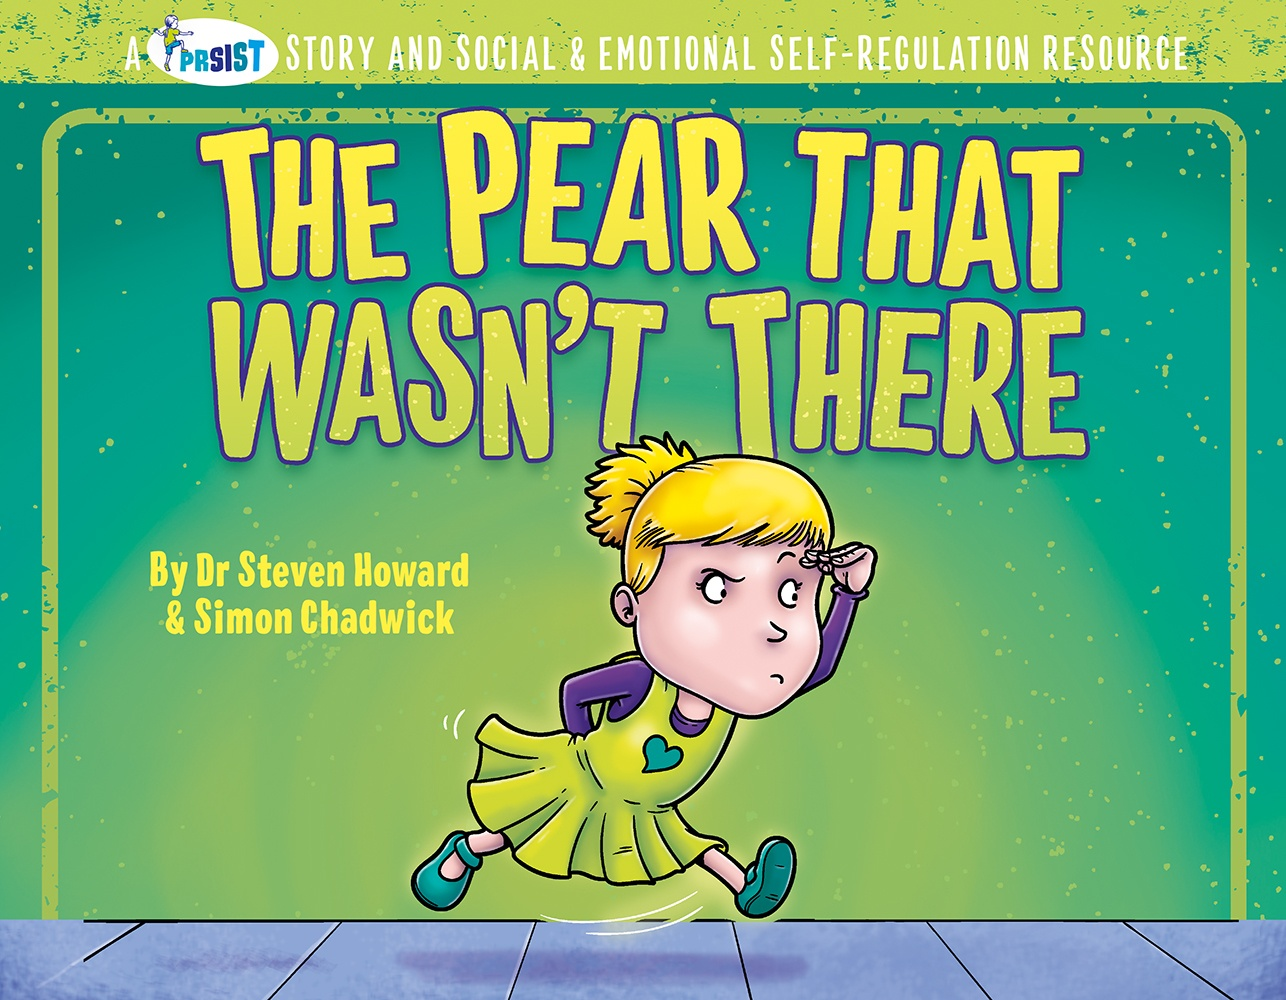 Cover for The Pear That Wasn't There from Ceratopia Books, a PRSIST book